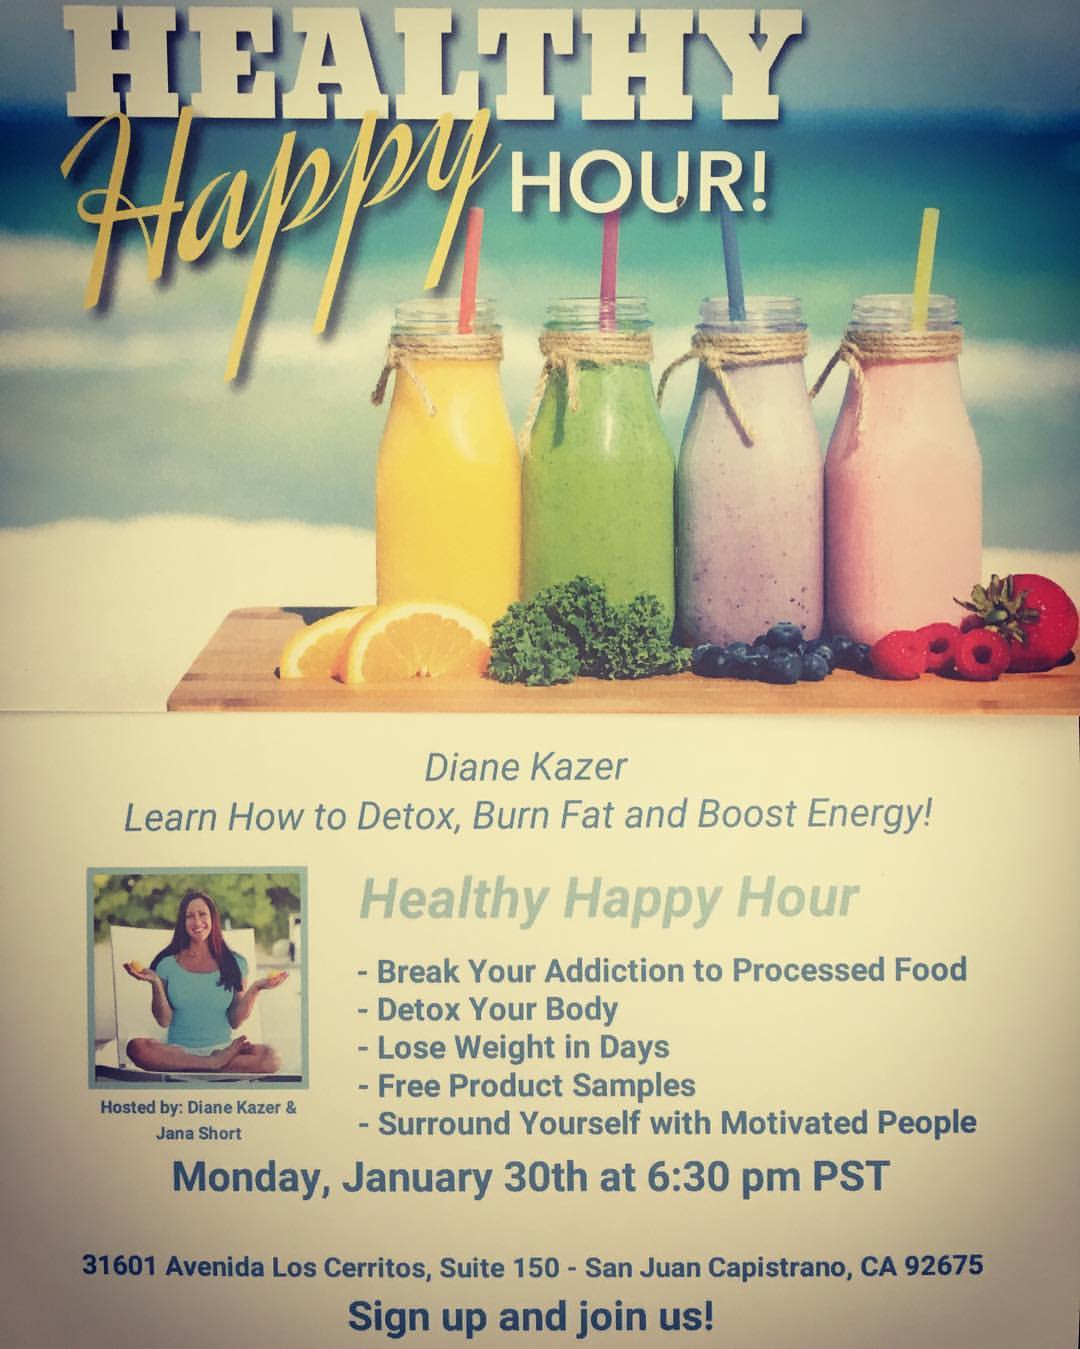 Lexus LaceUp Adds New Healthy Happy Hour to 2017 Season ...  Healthy Happy Hour